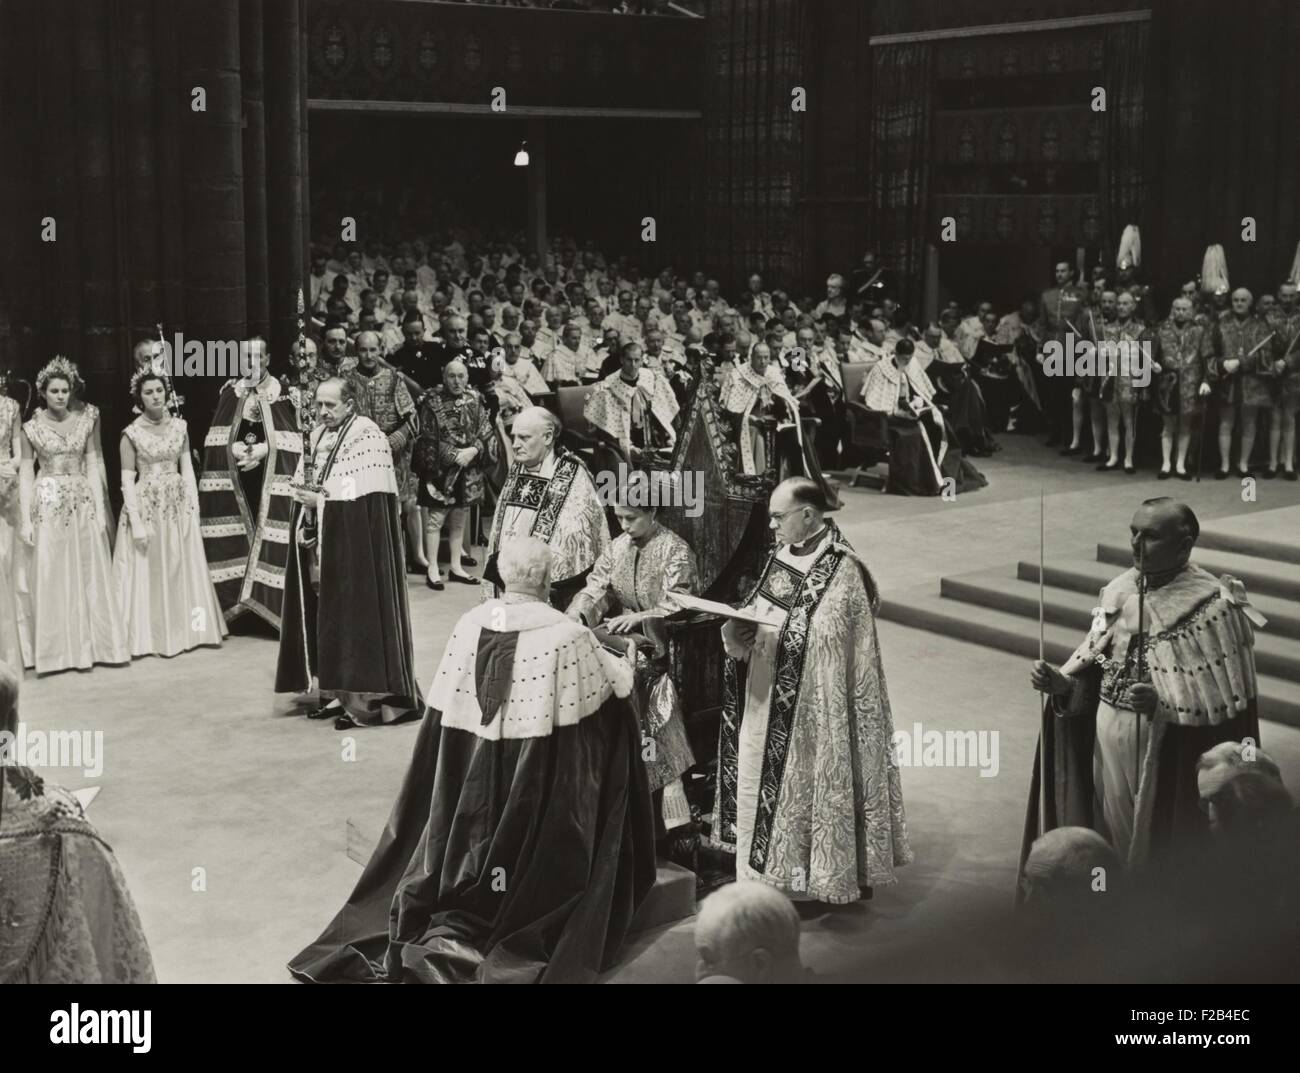 Coronation ceremony of Queen Elizabeth II, June 2, 1953. She is receiving the Spurs of Chivalry from the Lord Great - Stock Image